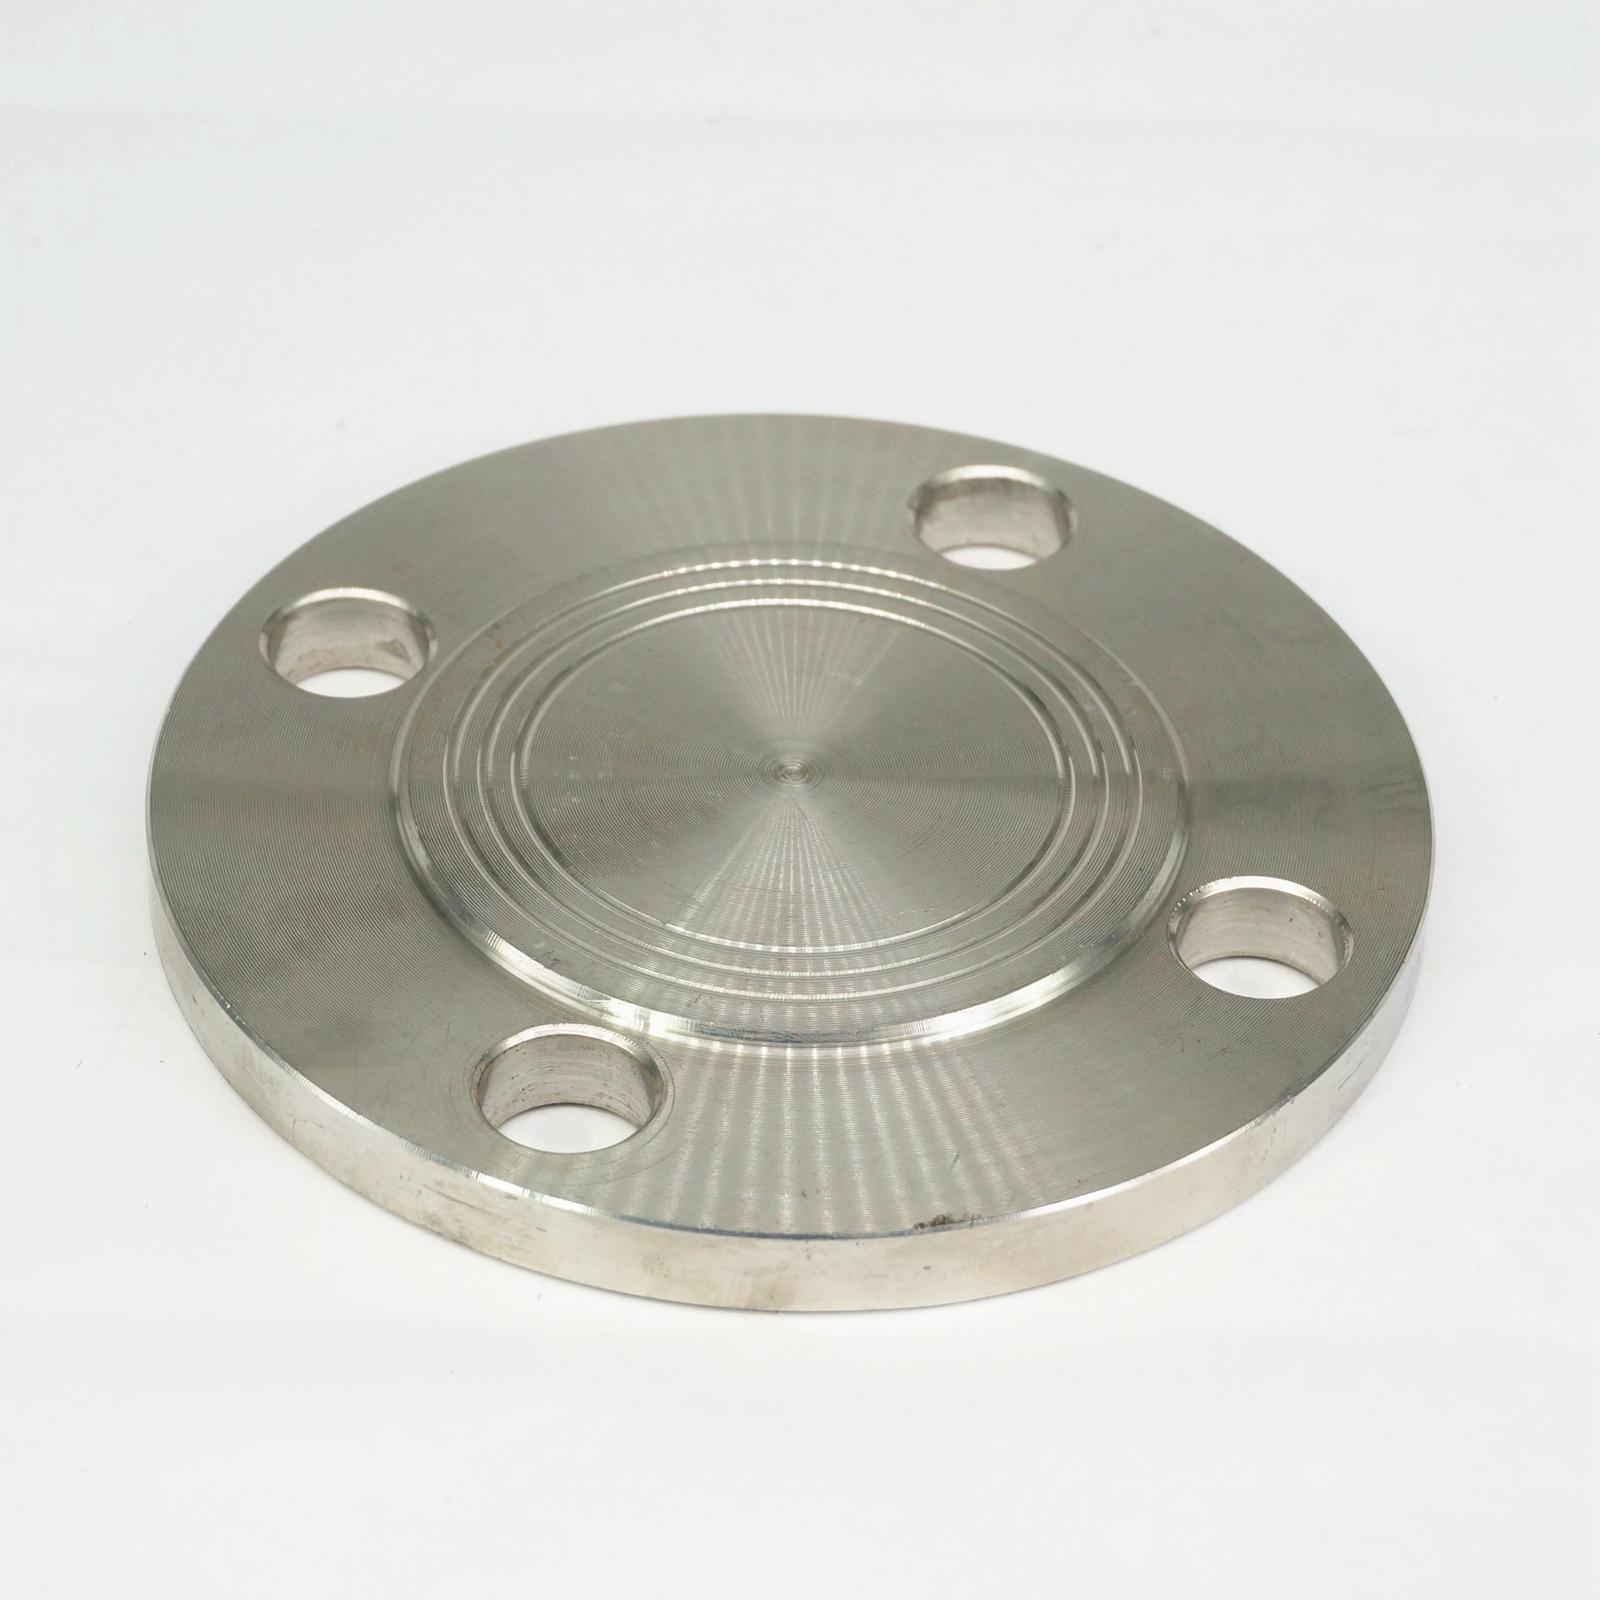 1-1/2 Blind Flange 304 Stainless Steel Pipe Fitting Flange End Cap Nominal Pressure 1.0 Mpa 1 2 bsp eqaul female thread elbow 90 deg 304 stainless steel pipe fitting adapter connector operating pressure 2 5 mpa